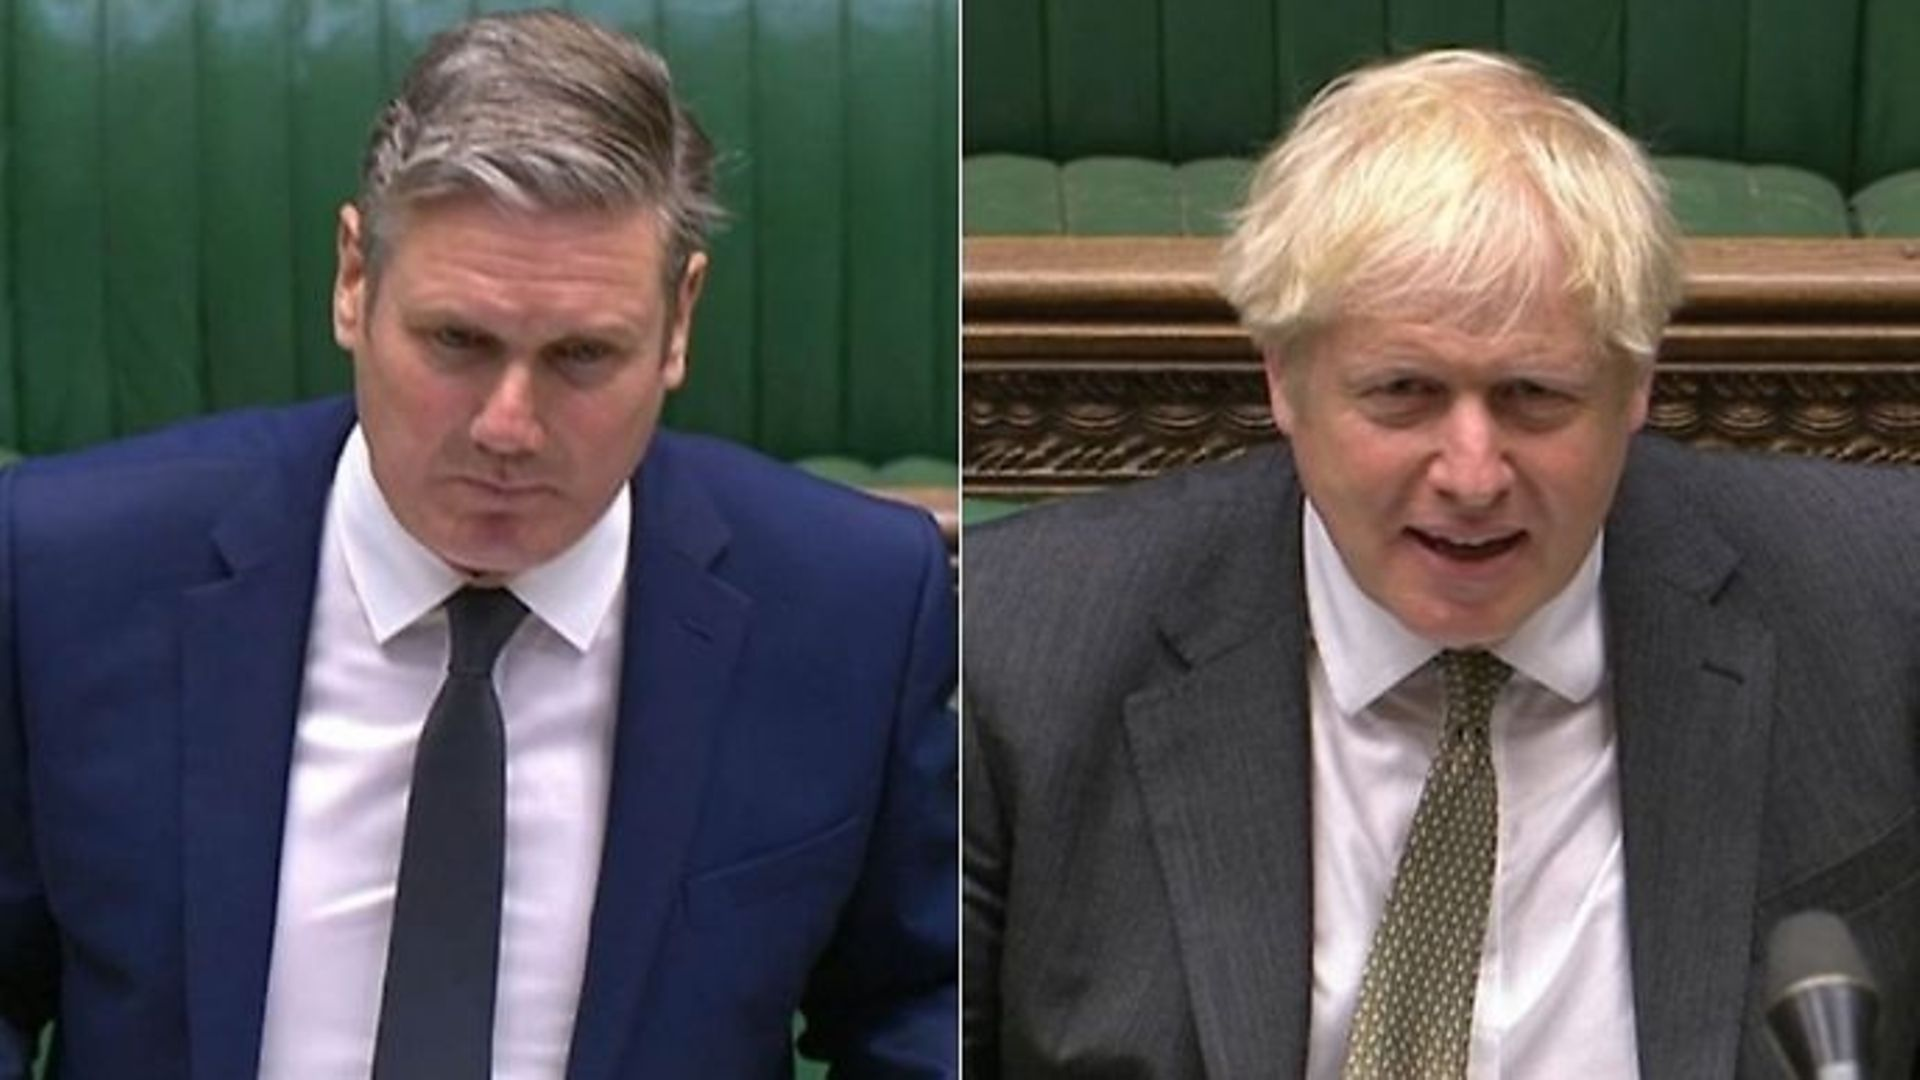 Labour leader Sir Keir Starmer (L) and Boris Johnson in the House of Commons.